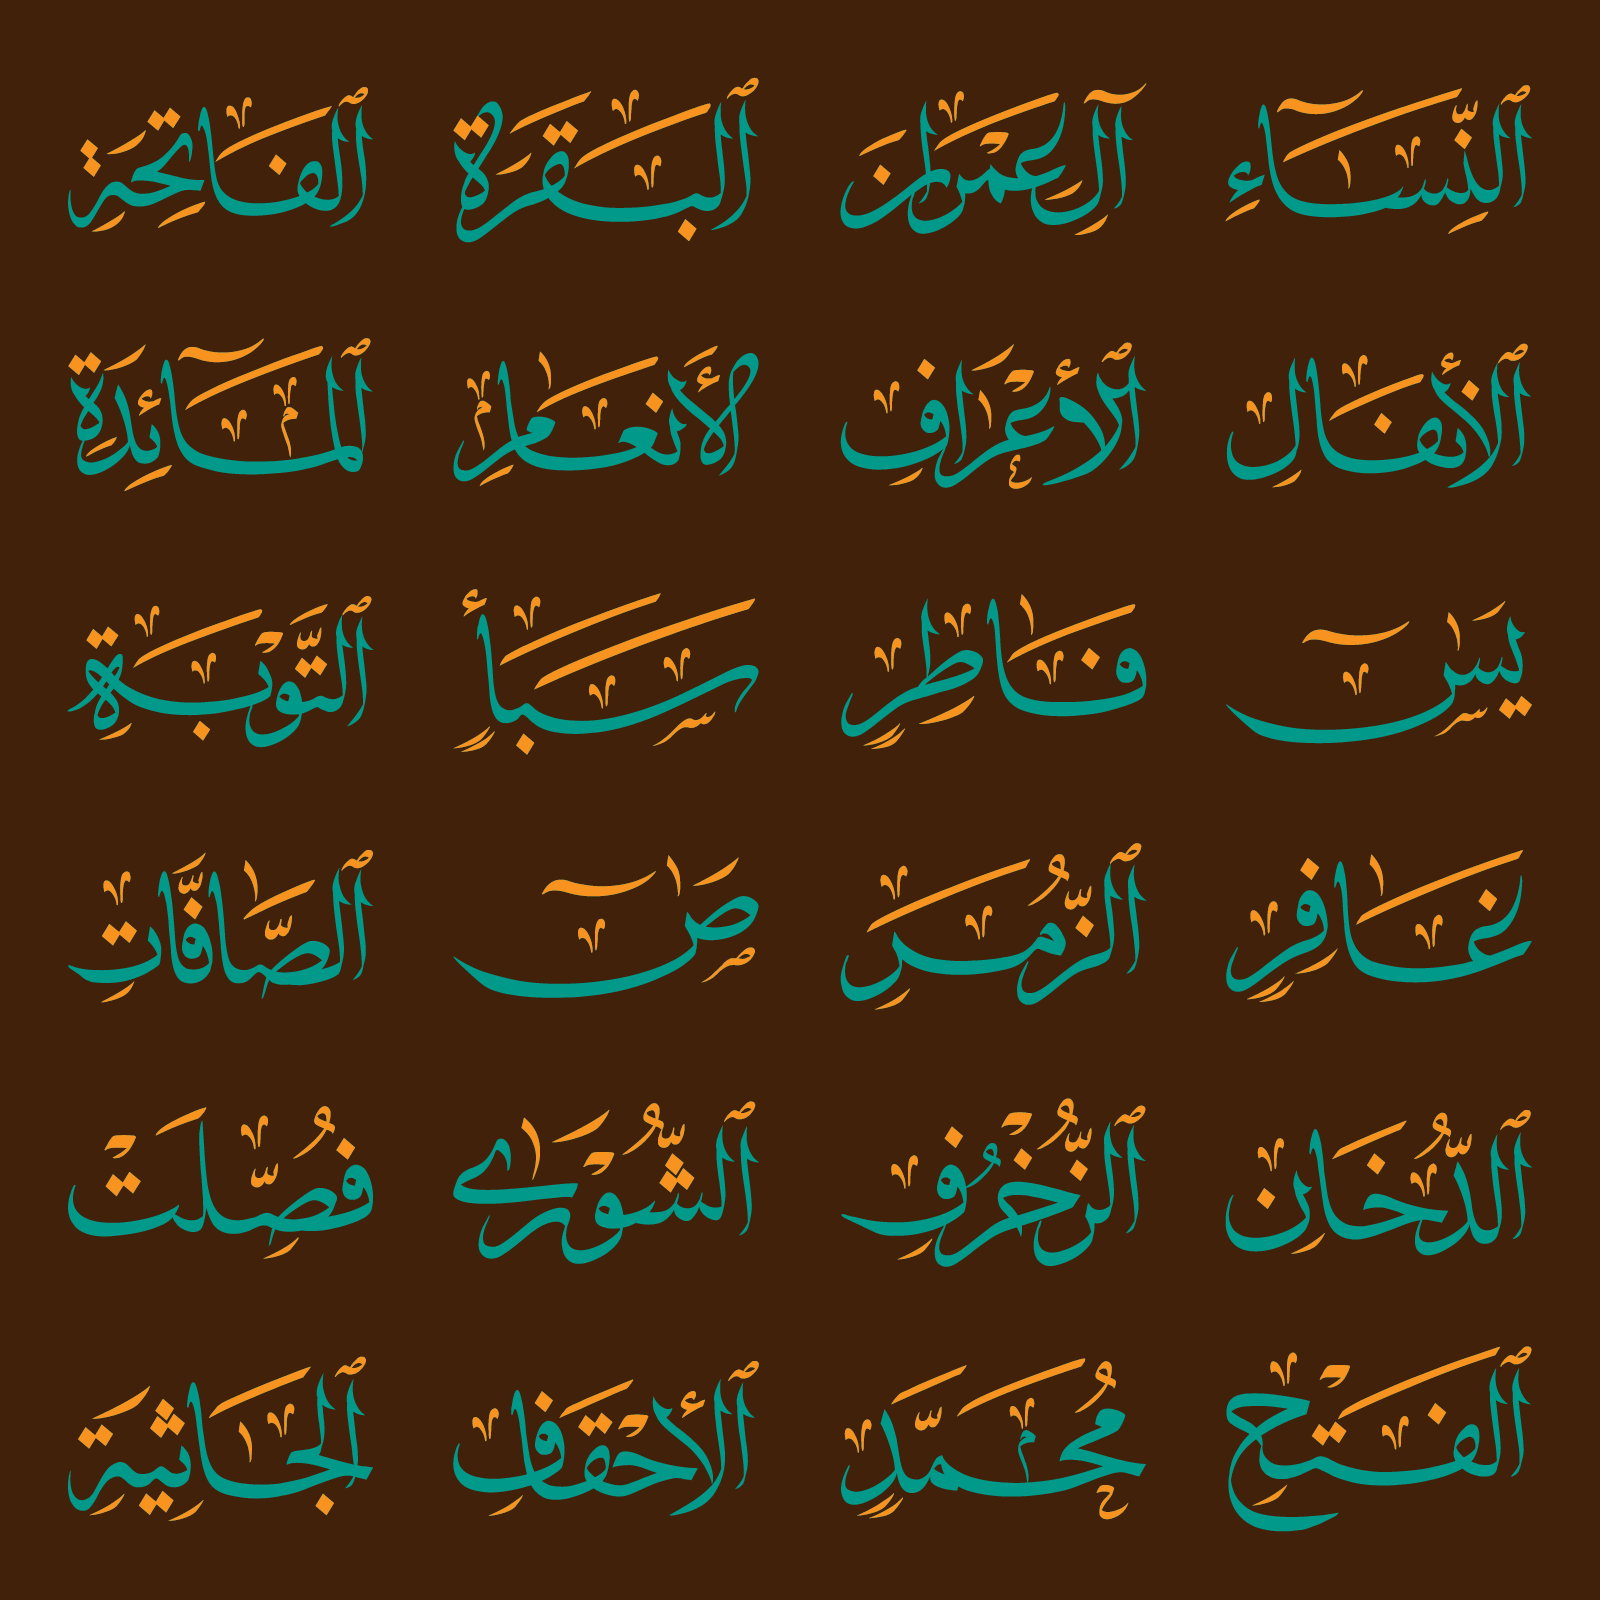 font quran surah 114 color arabic islamic font ttf svg download free #islamic #islam #arabic #type #typegang #arabic #quran #typedesign #font #logo #design #fonts #typedesigner #styles